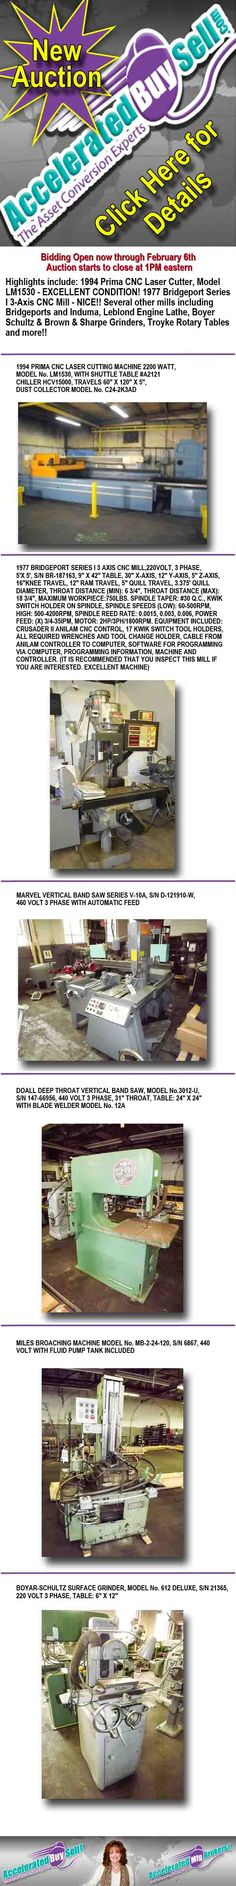 UPCOMING EVENTS:  FEBRUARY 6TH - MULTI LOCATION ONLINE #AUCTION - BIDDING NOW OPEN THROUGH FEBRUARY 6 AND STARTS TO CLOSE AT 1PM EASTERN.  HIGHLIGHTS INCLUDE: 1994 #Prima #CNC #Laser Cutter, Model LM1530 - EXCELLENT CONDITION! 1977 #Bridgeport Series I 3-Axis CNC Mill - NICE!! Several other mills including #Bridgeports and #Induma, #Leblond Engine Lathe, #Boyer Schultz & Brown & Sharpe Grinders, #Troyke Rotary Tables and more!!       #Infographic by Accelerated Buy Sell, Inc.